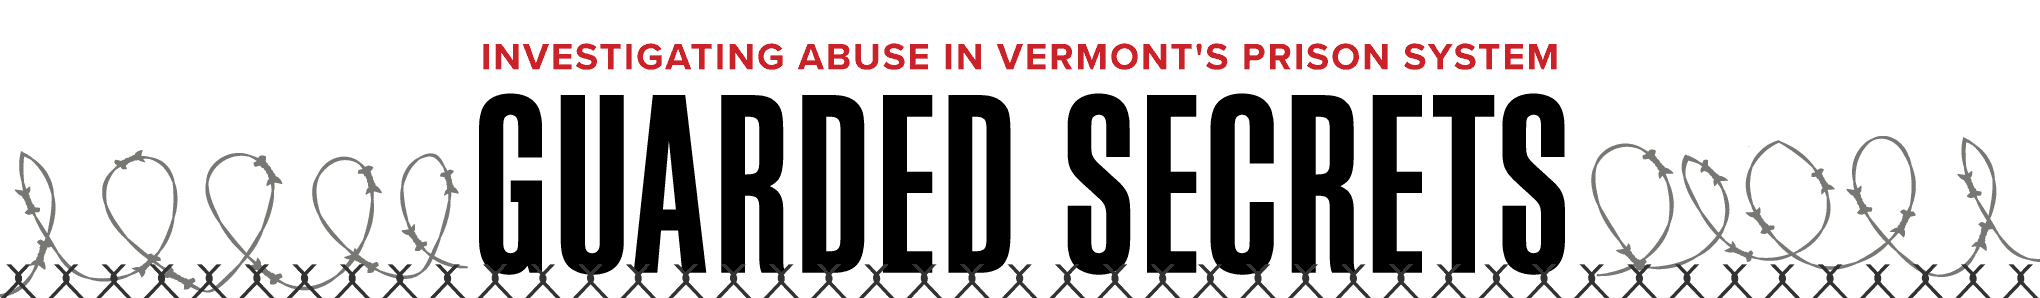 Guarded Secrets: Investigating Abuse in Vermont's Prison System